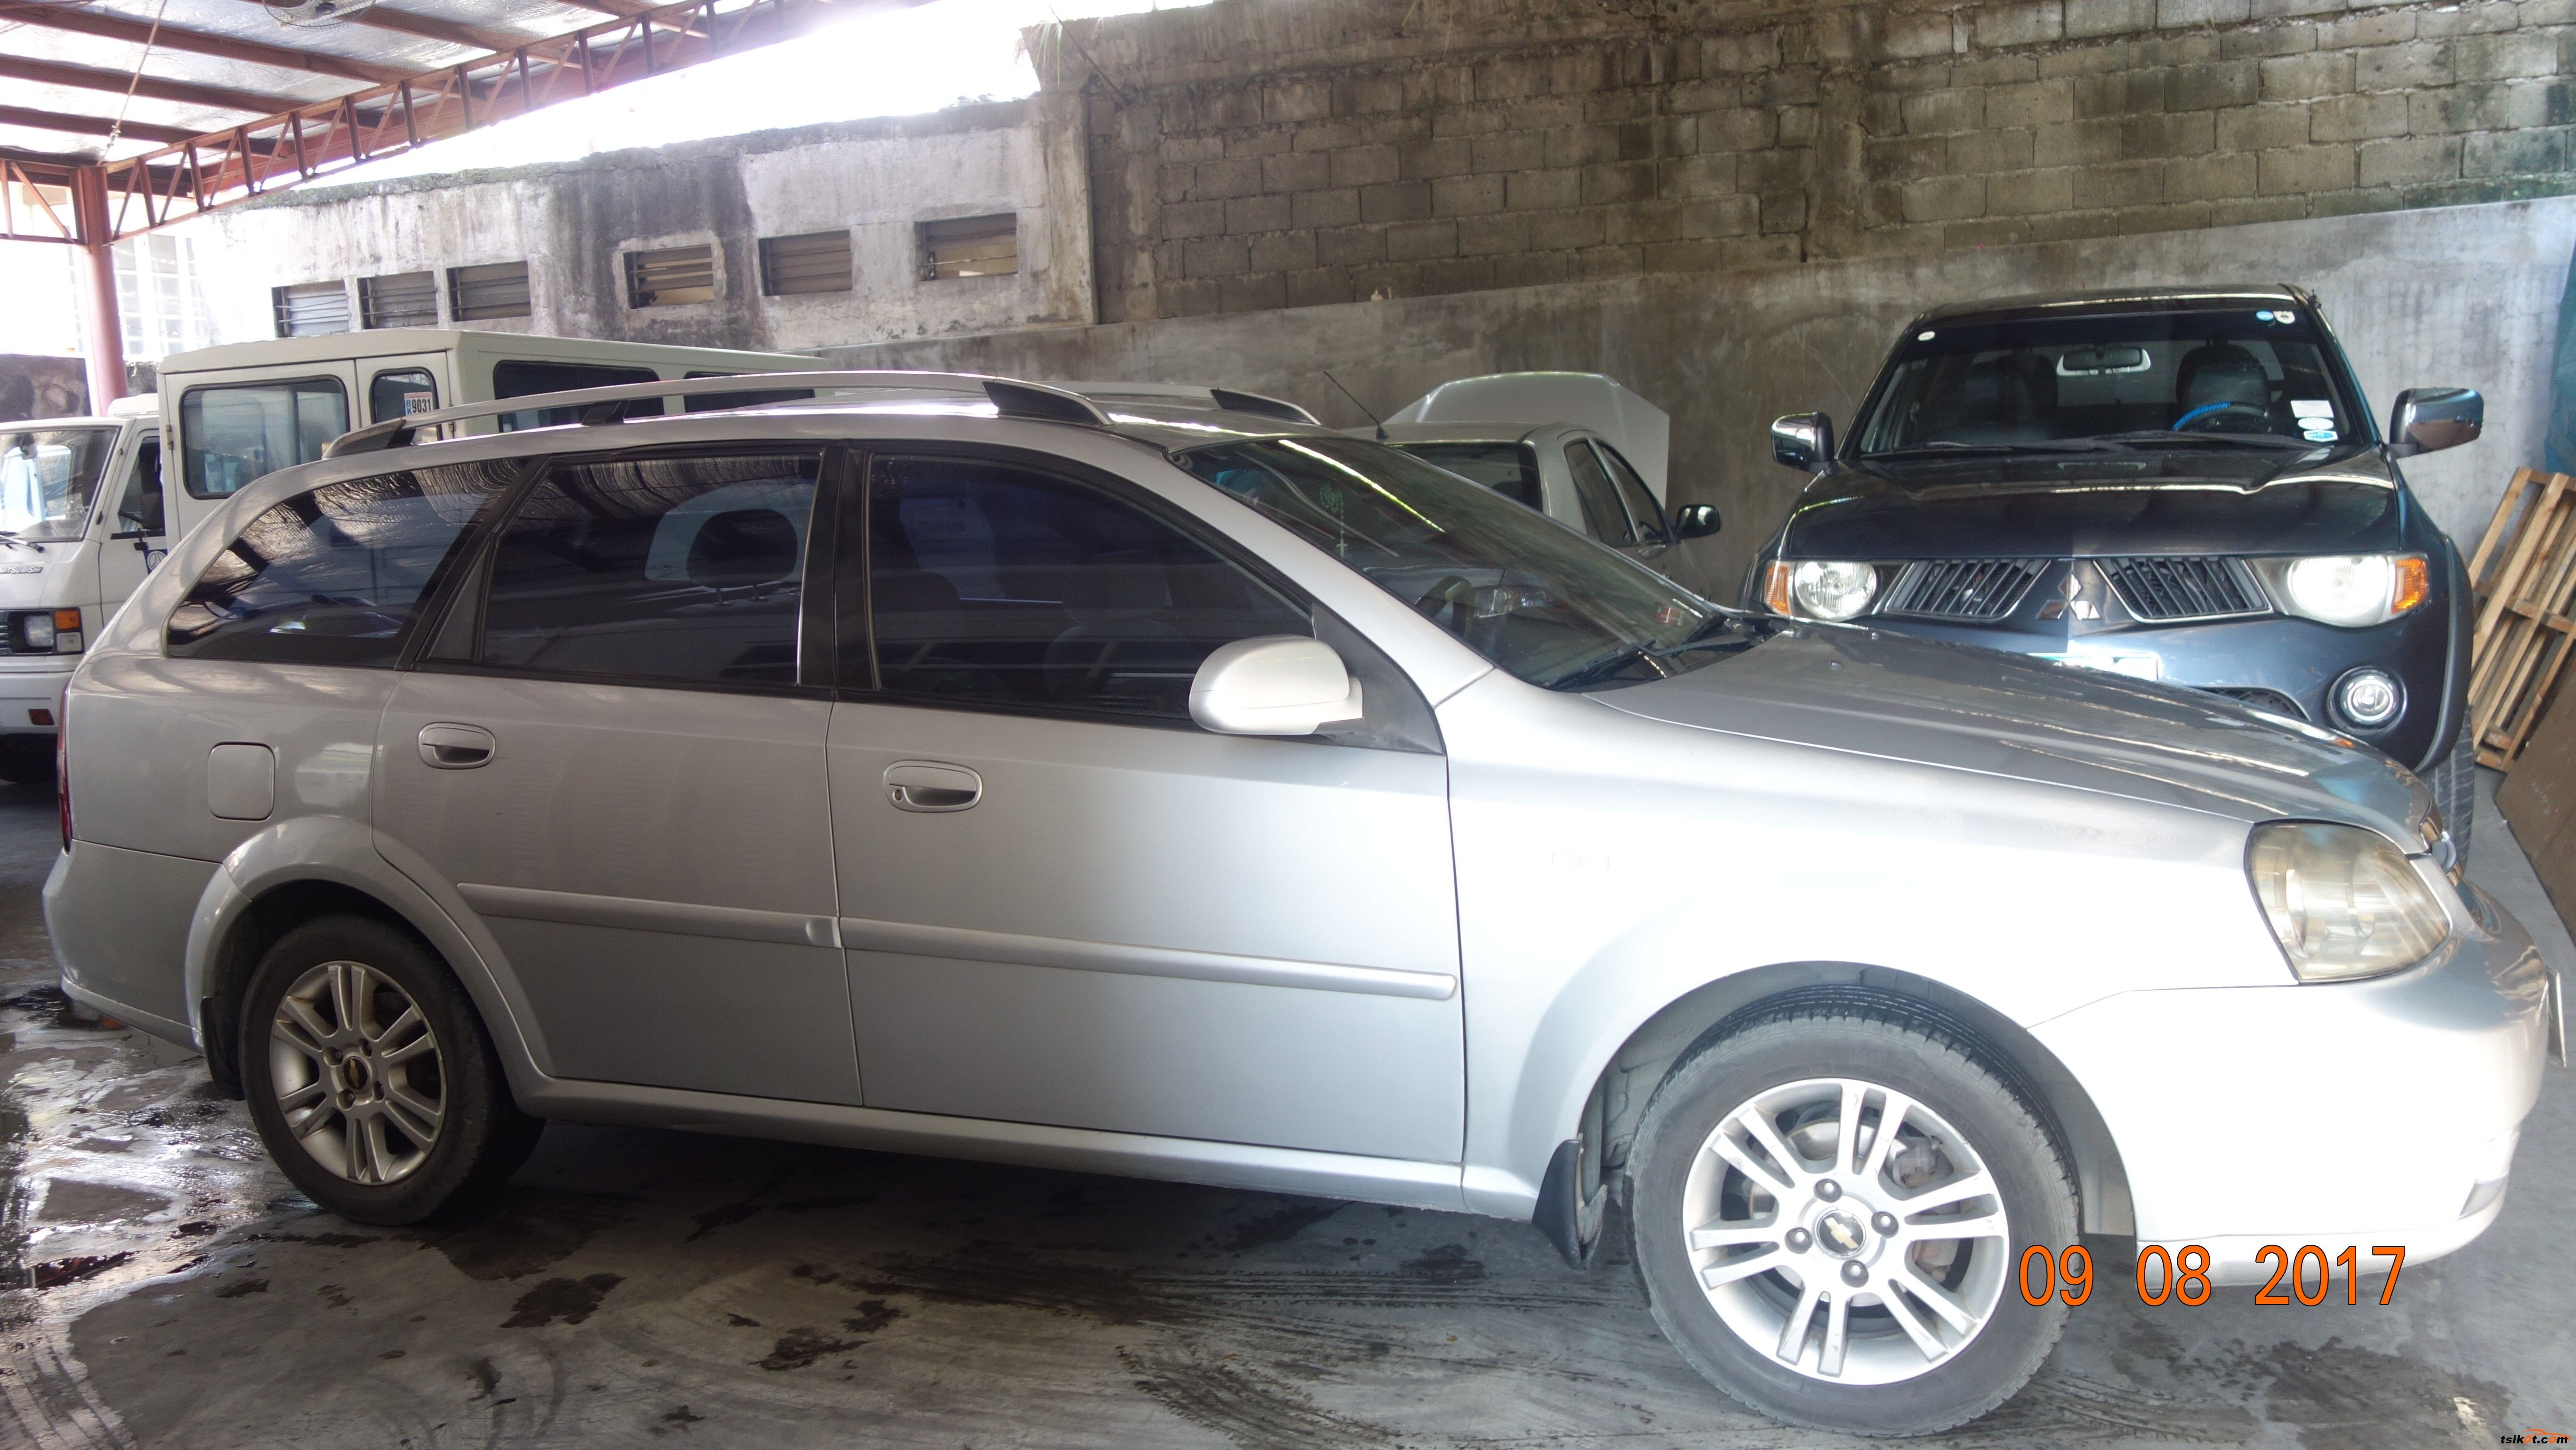 2007 Chevrolet Optra Ls Bonne Condition Chevrolet Optra Beautiful Cars